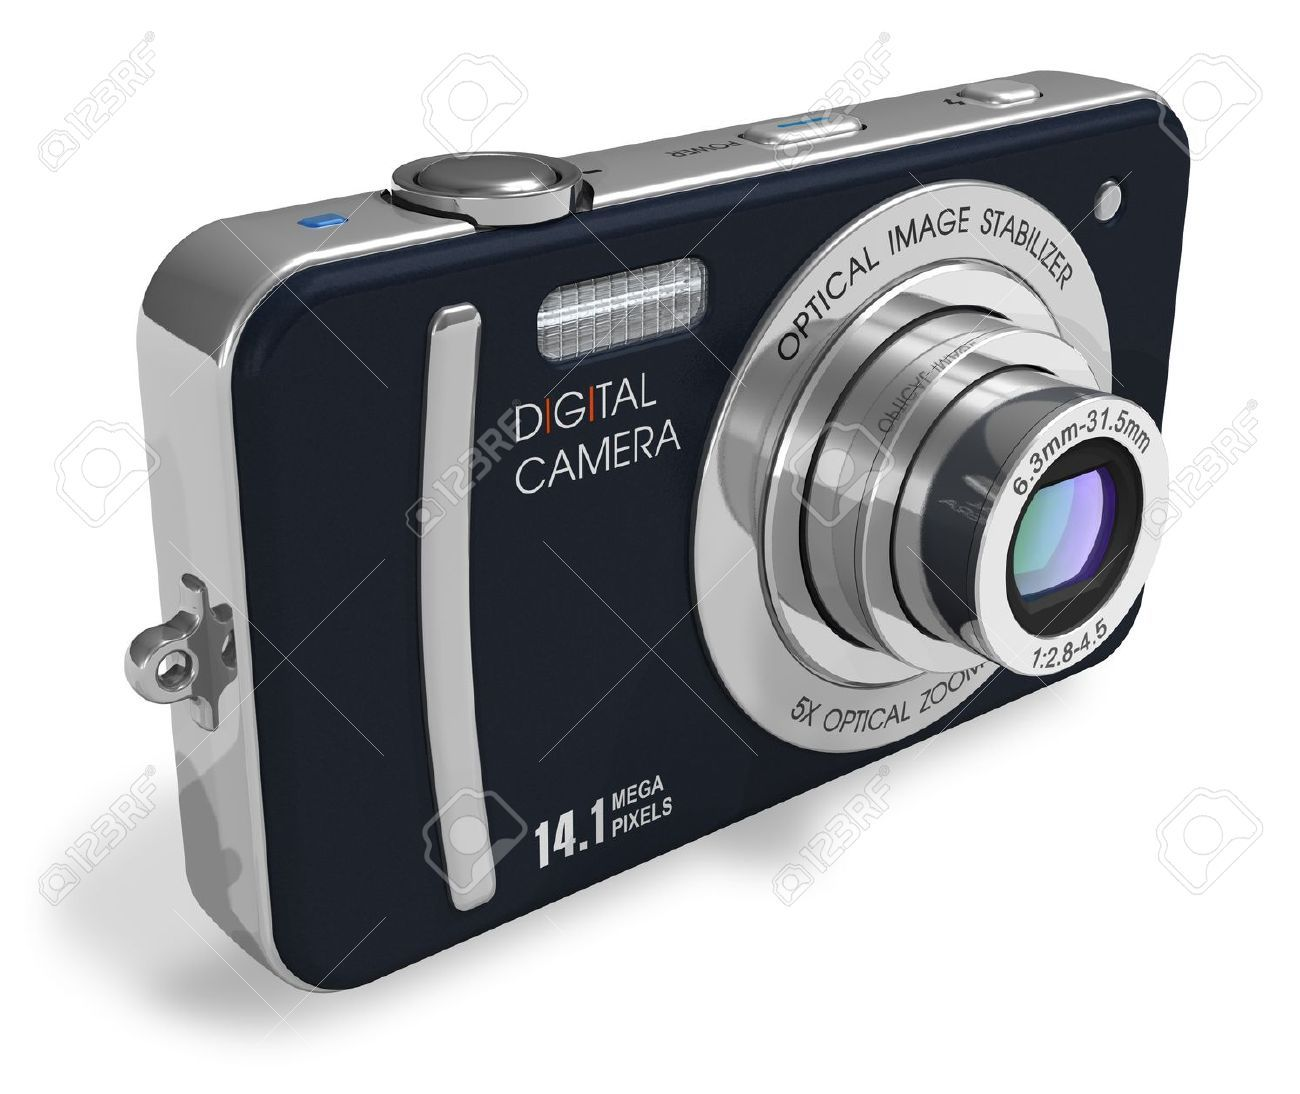 8644096-Compact-digital-camera-Design-of-this-device-is-my-OWN-Stock-Photo.jpg (1300×1094)